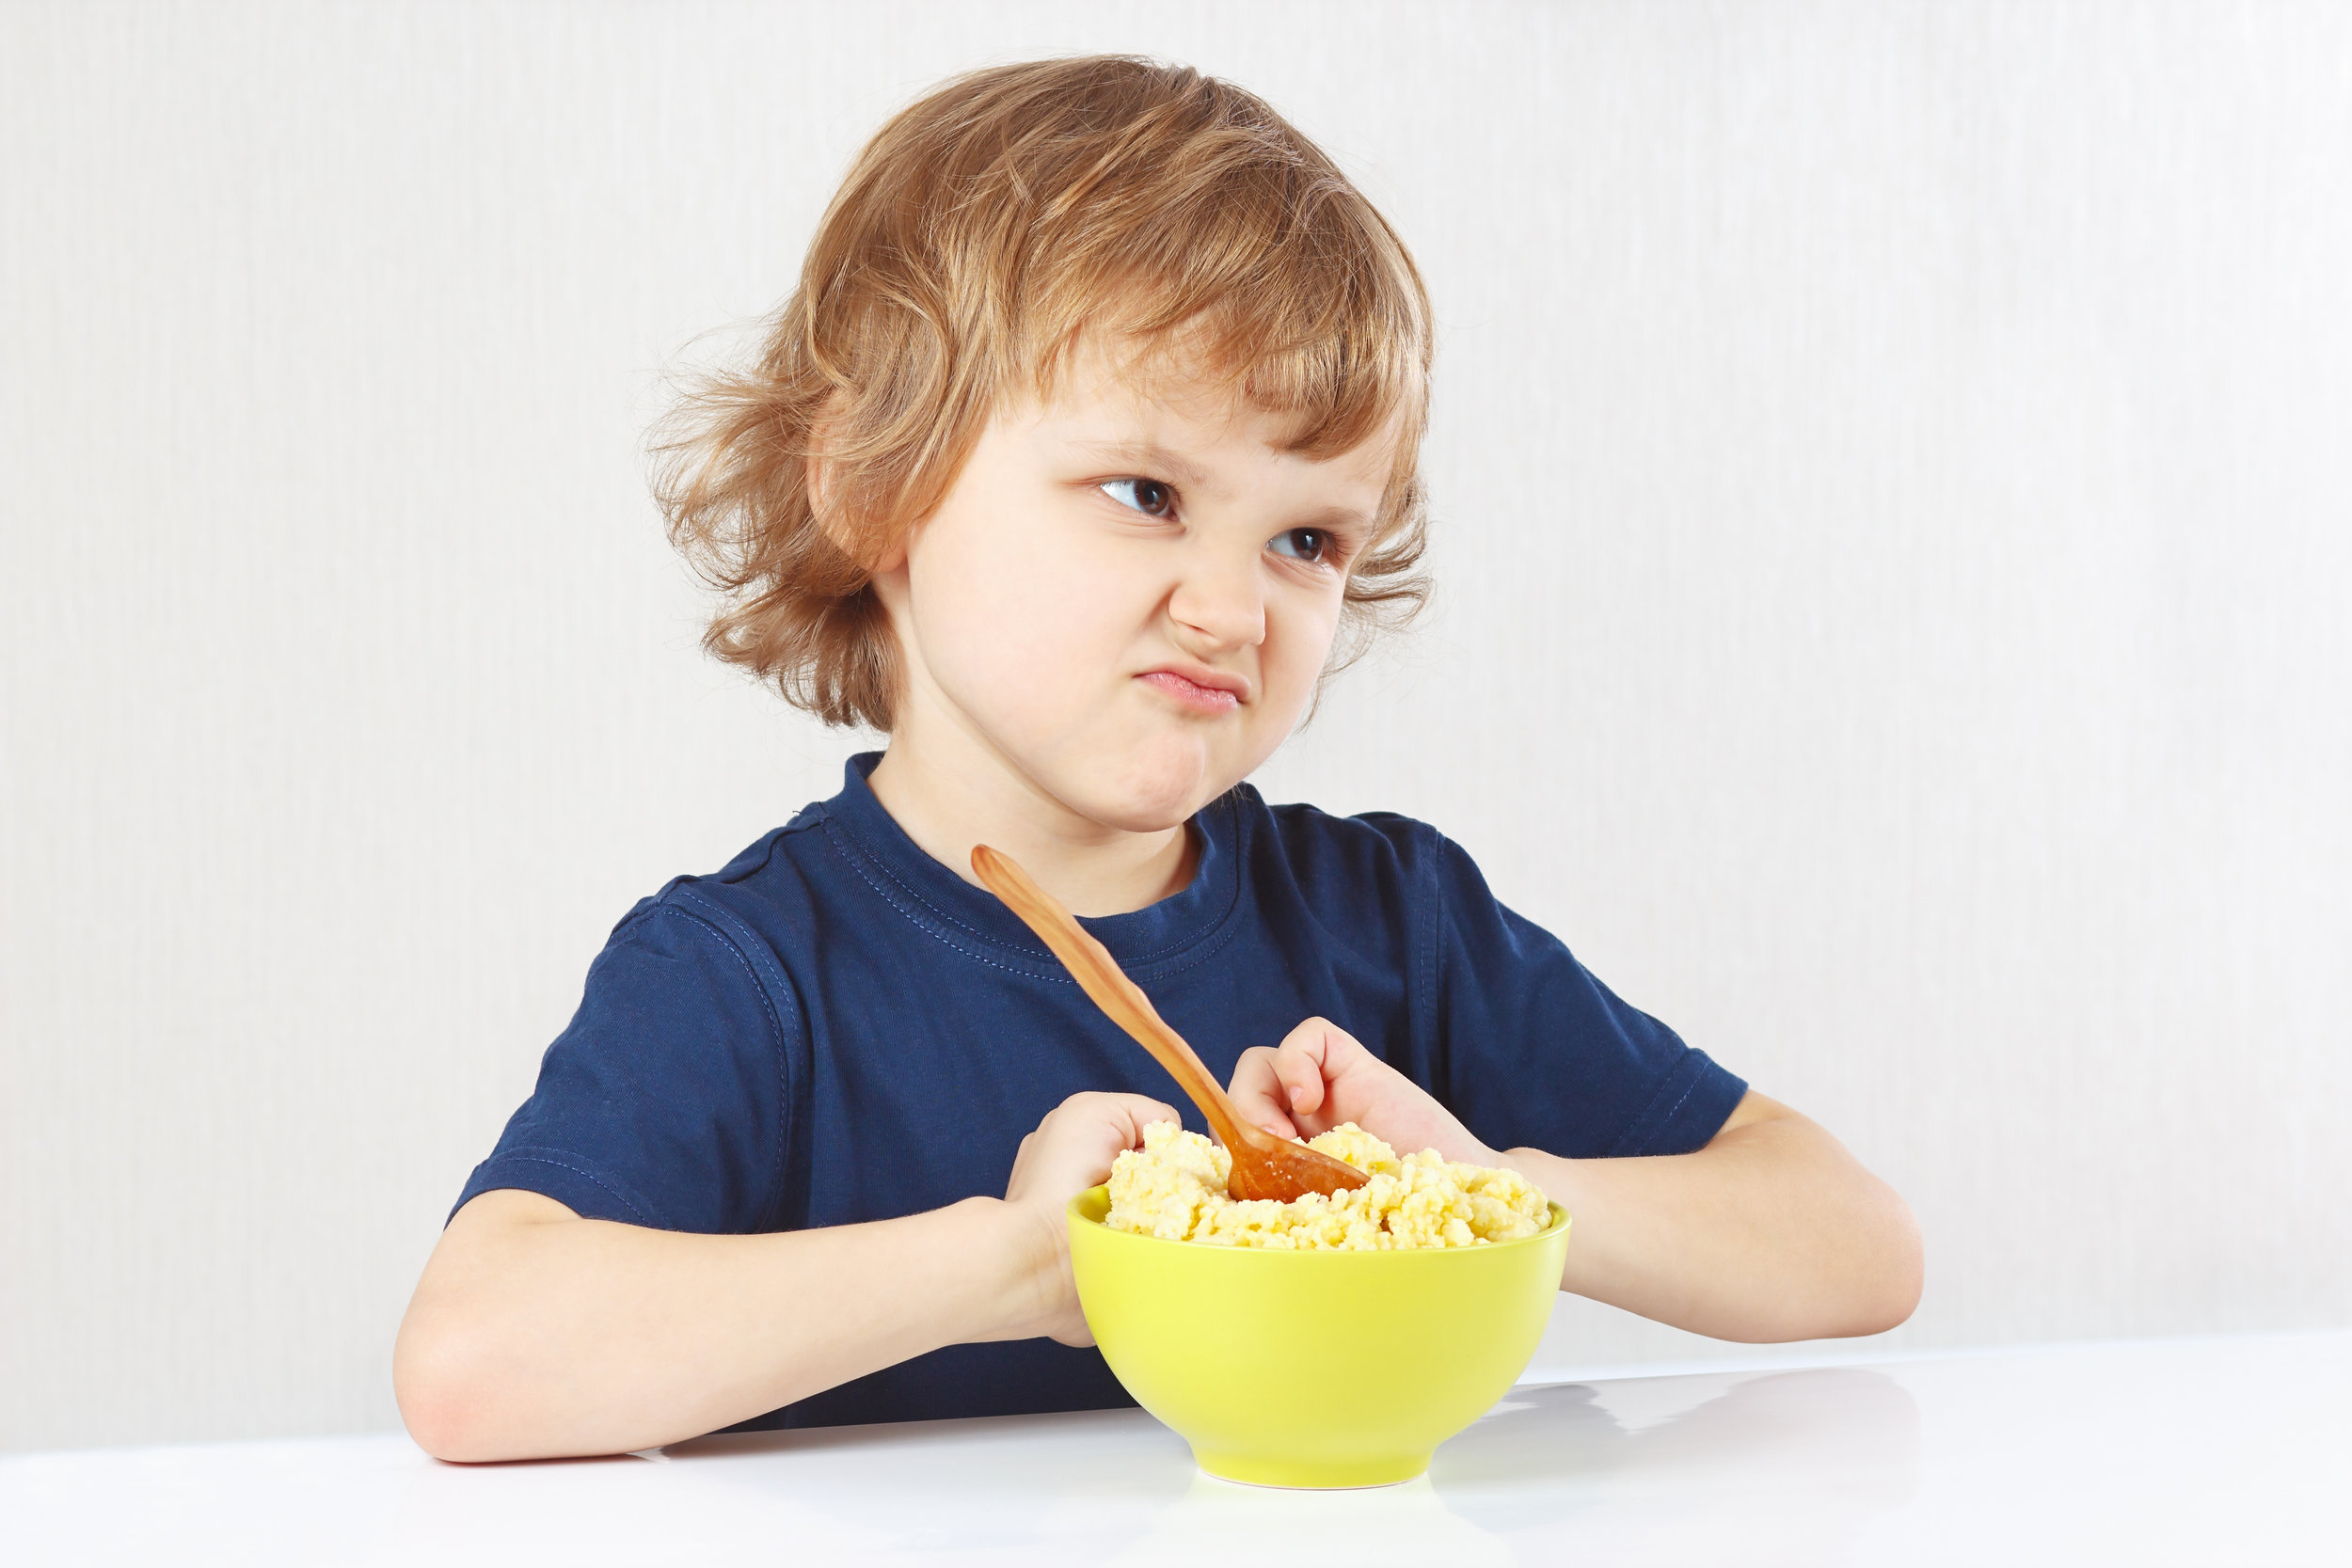 A feeding disorder may be accompanied by behavior problems during mealtime (e.g., tantrums). In addition, some children may display skill deficits such as an inability to chew or swallow foods. Finally, medical problems such as vomiting may also be evident in children with feeding disorders. These problems may arise at any time during childhood. -